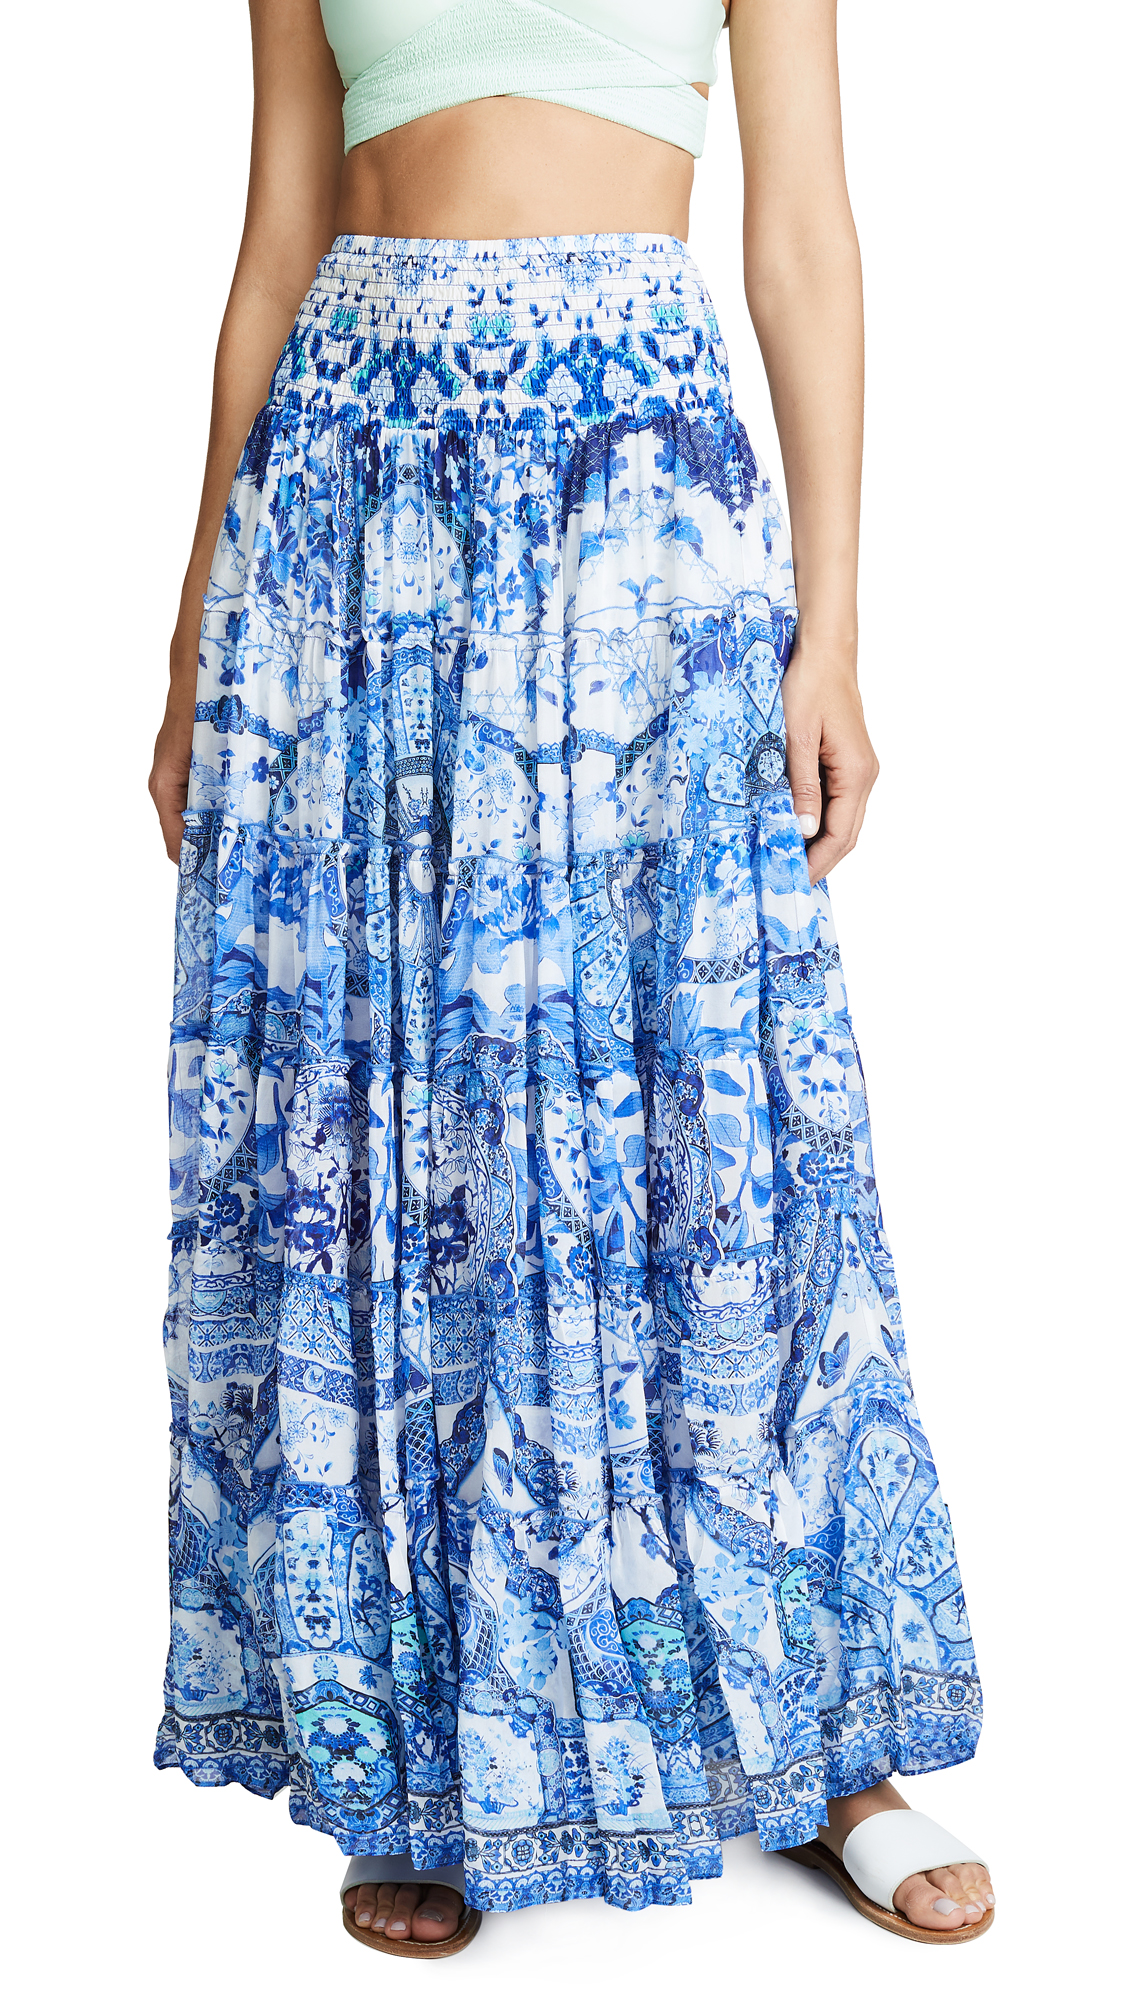 Sheer Tiered Maxi Skirt / Dress in Blue